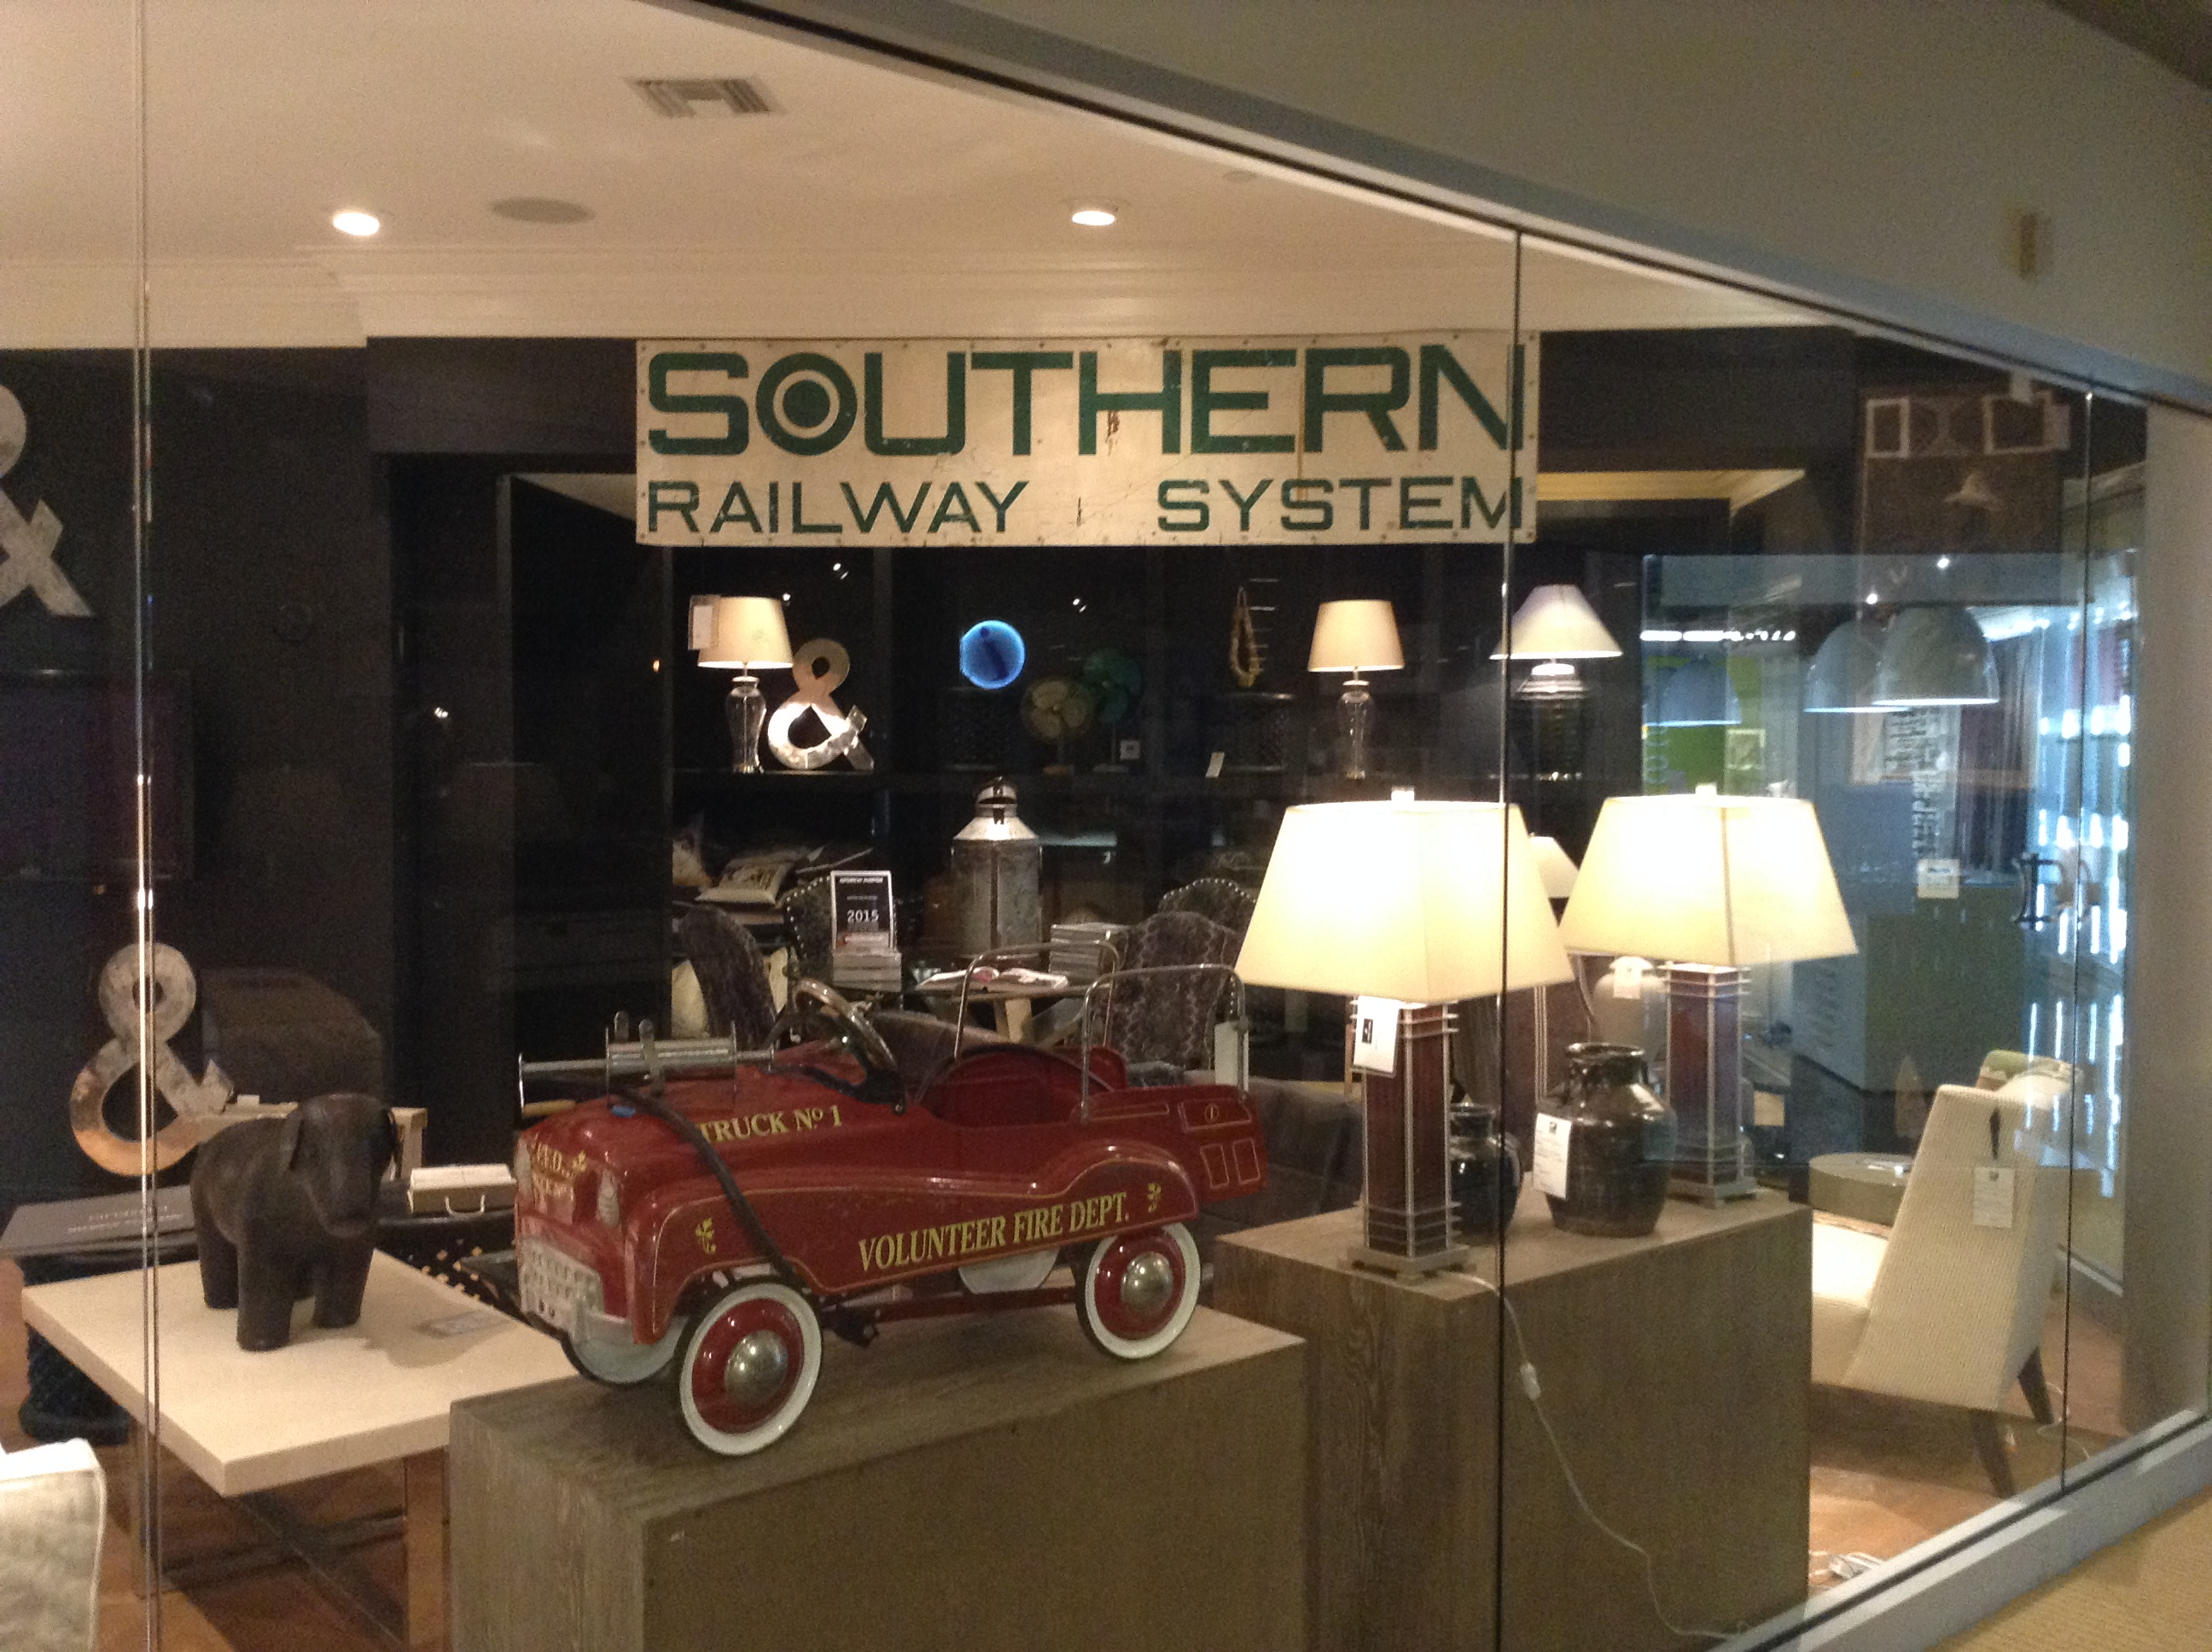 andrewmartin-vintage-car-southern-railway-system-lamps-tables-interiordesign-homedecor-de-wallpaper-wp5602252